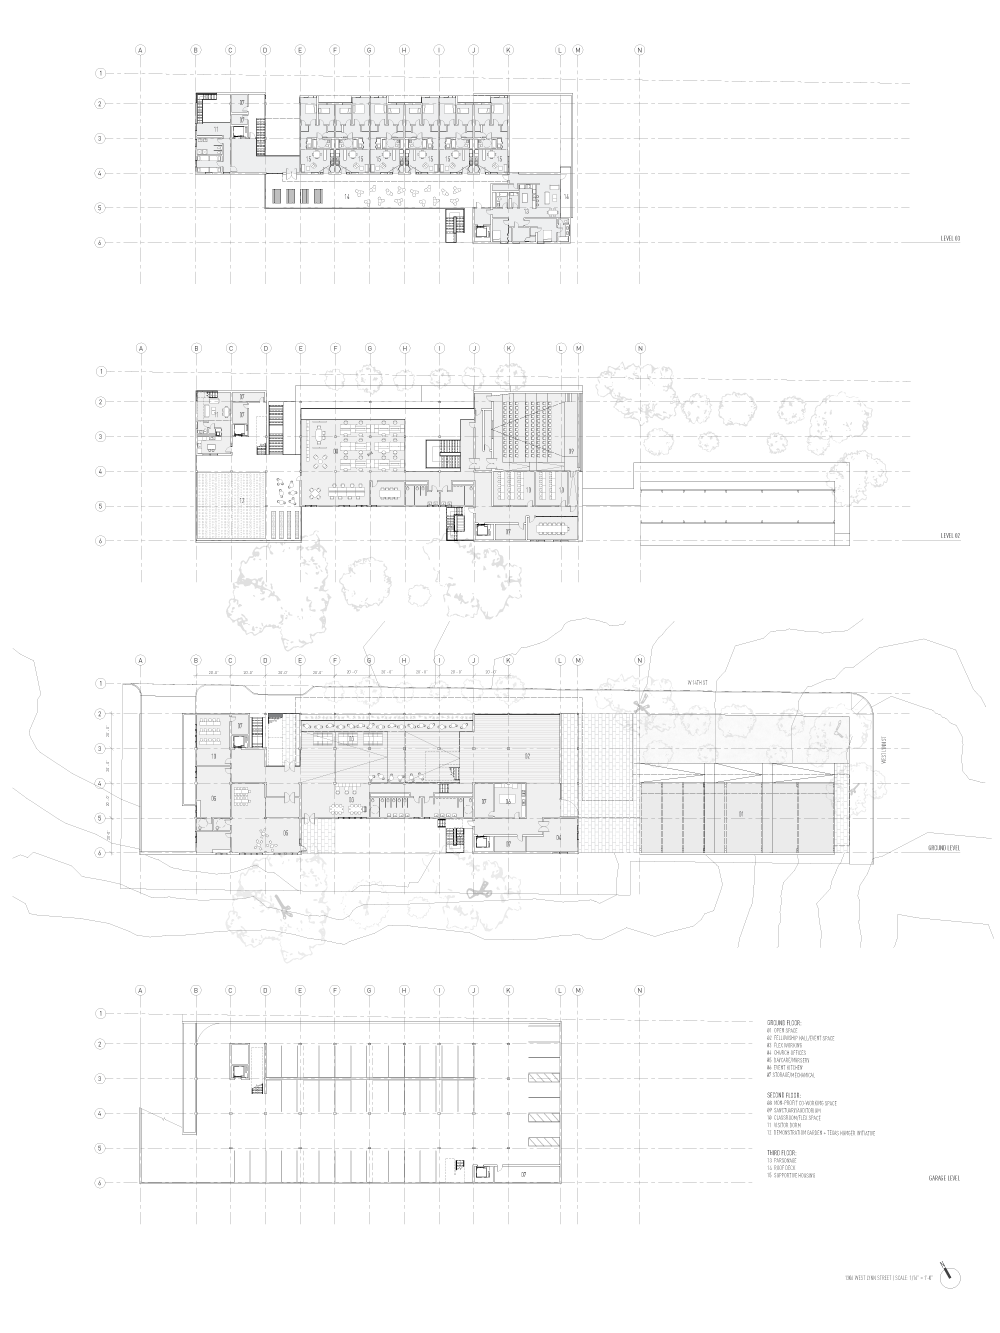 floor_plans_final_alllevels.png